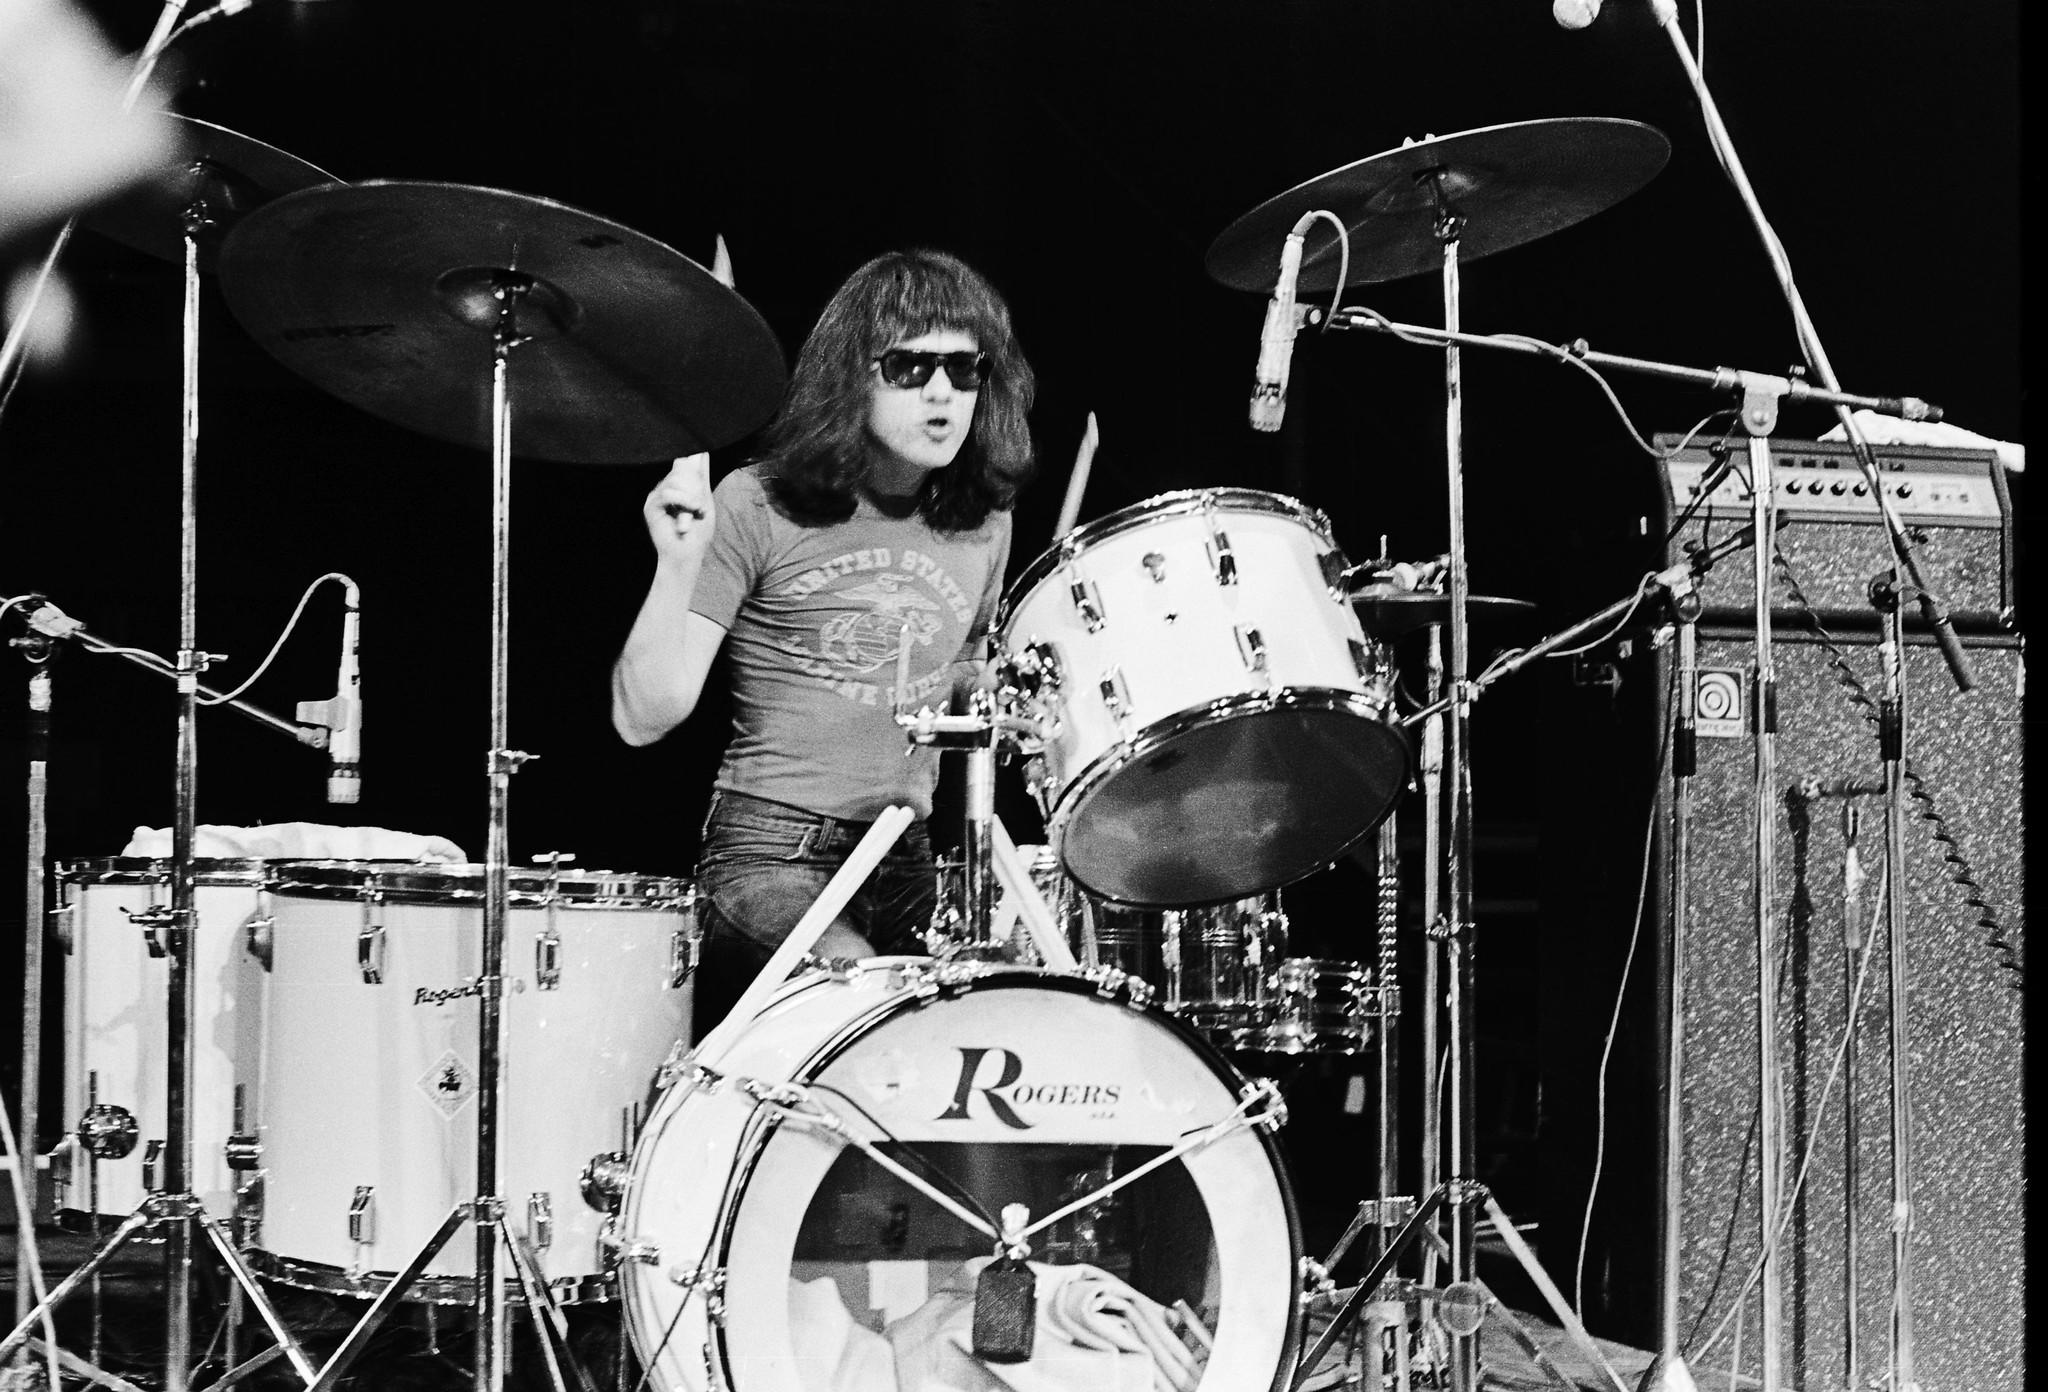 Tommy Ramone (Thomas Erdelyi) performs on stage with The Ramones at The Roundhouse in London on 4th July 1976.